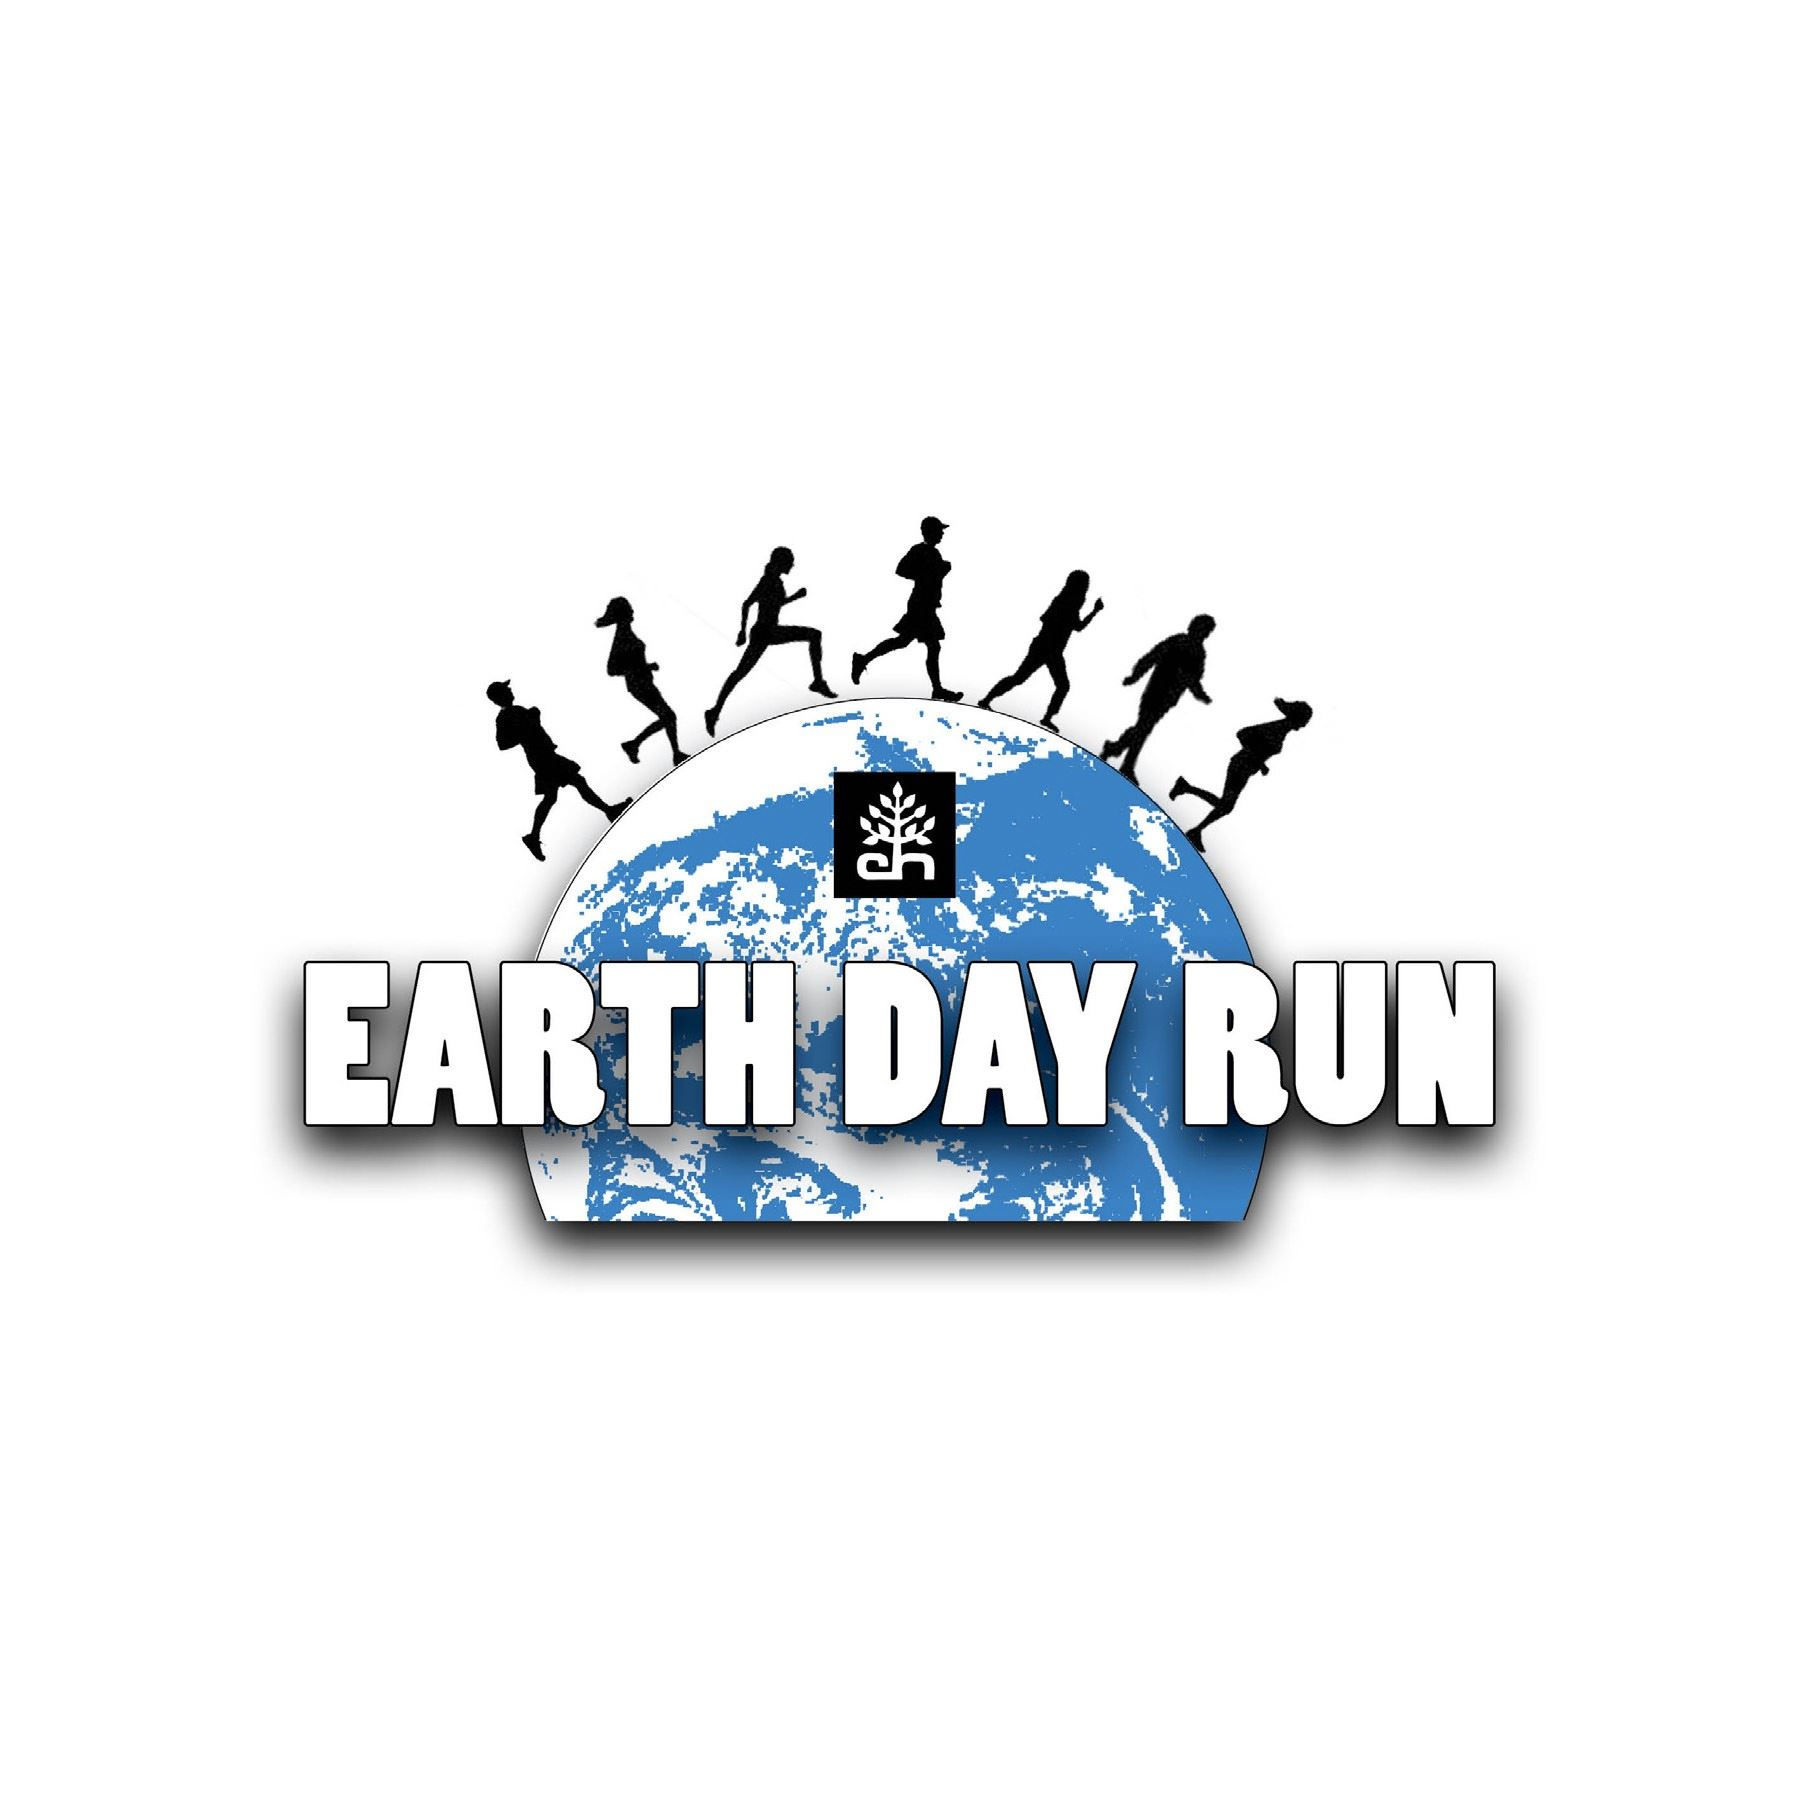 Earth Day Run